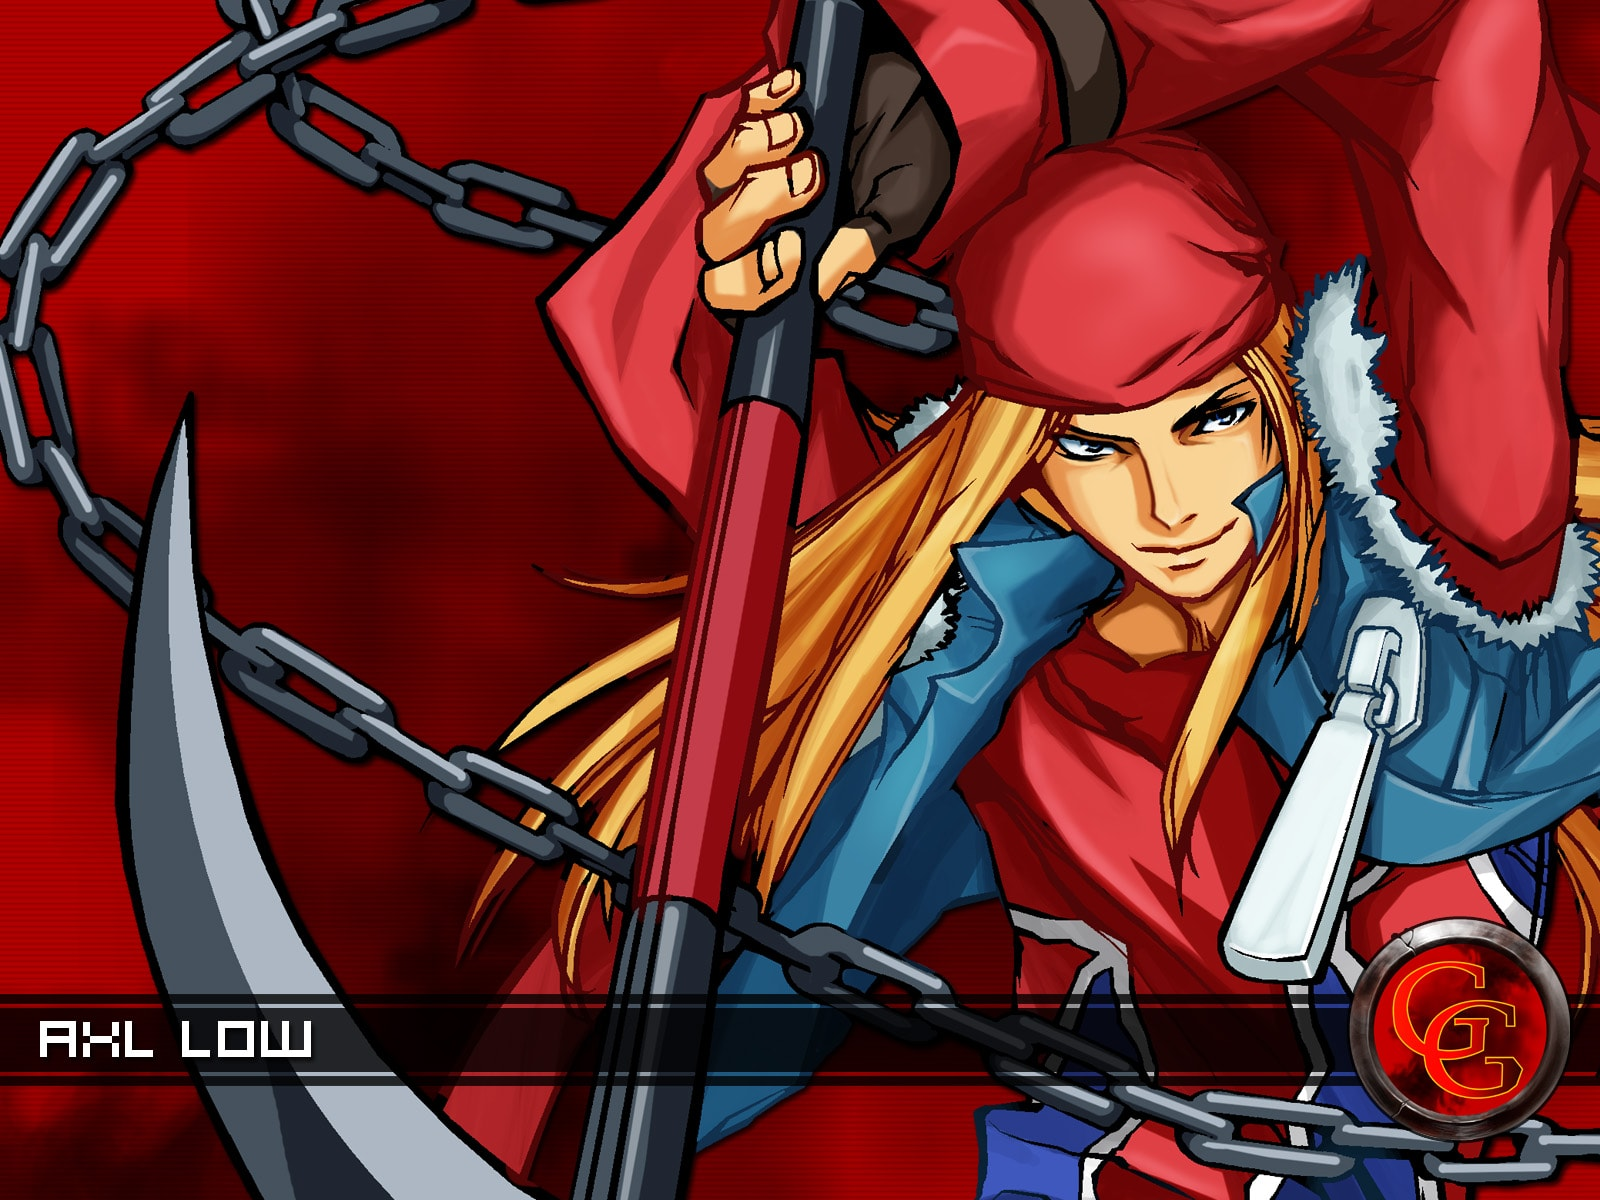 Guilty Gear: Axl Low widescreen wallpapers